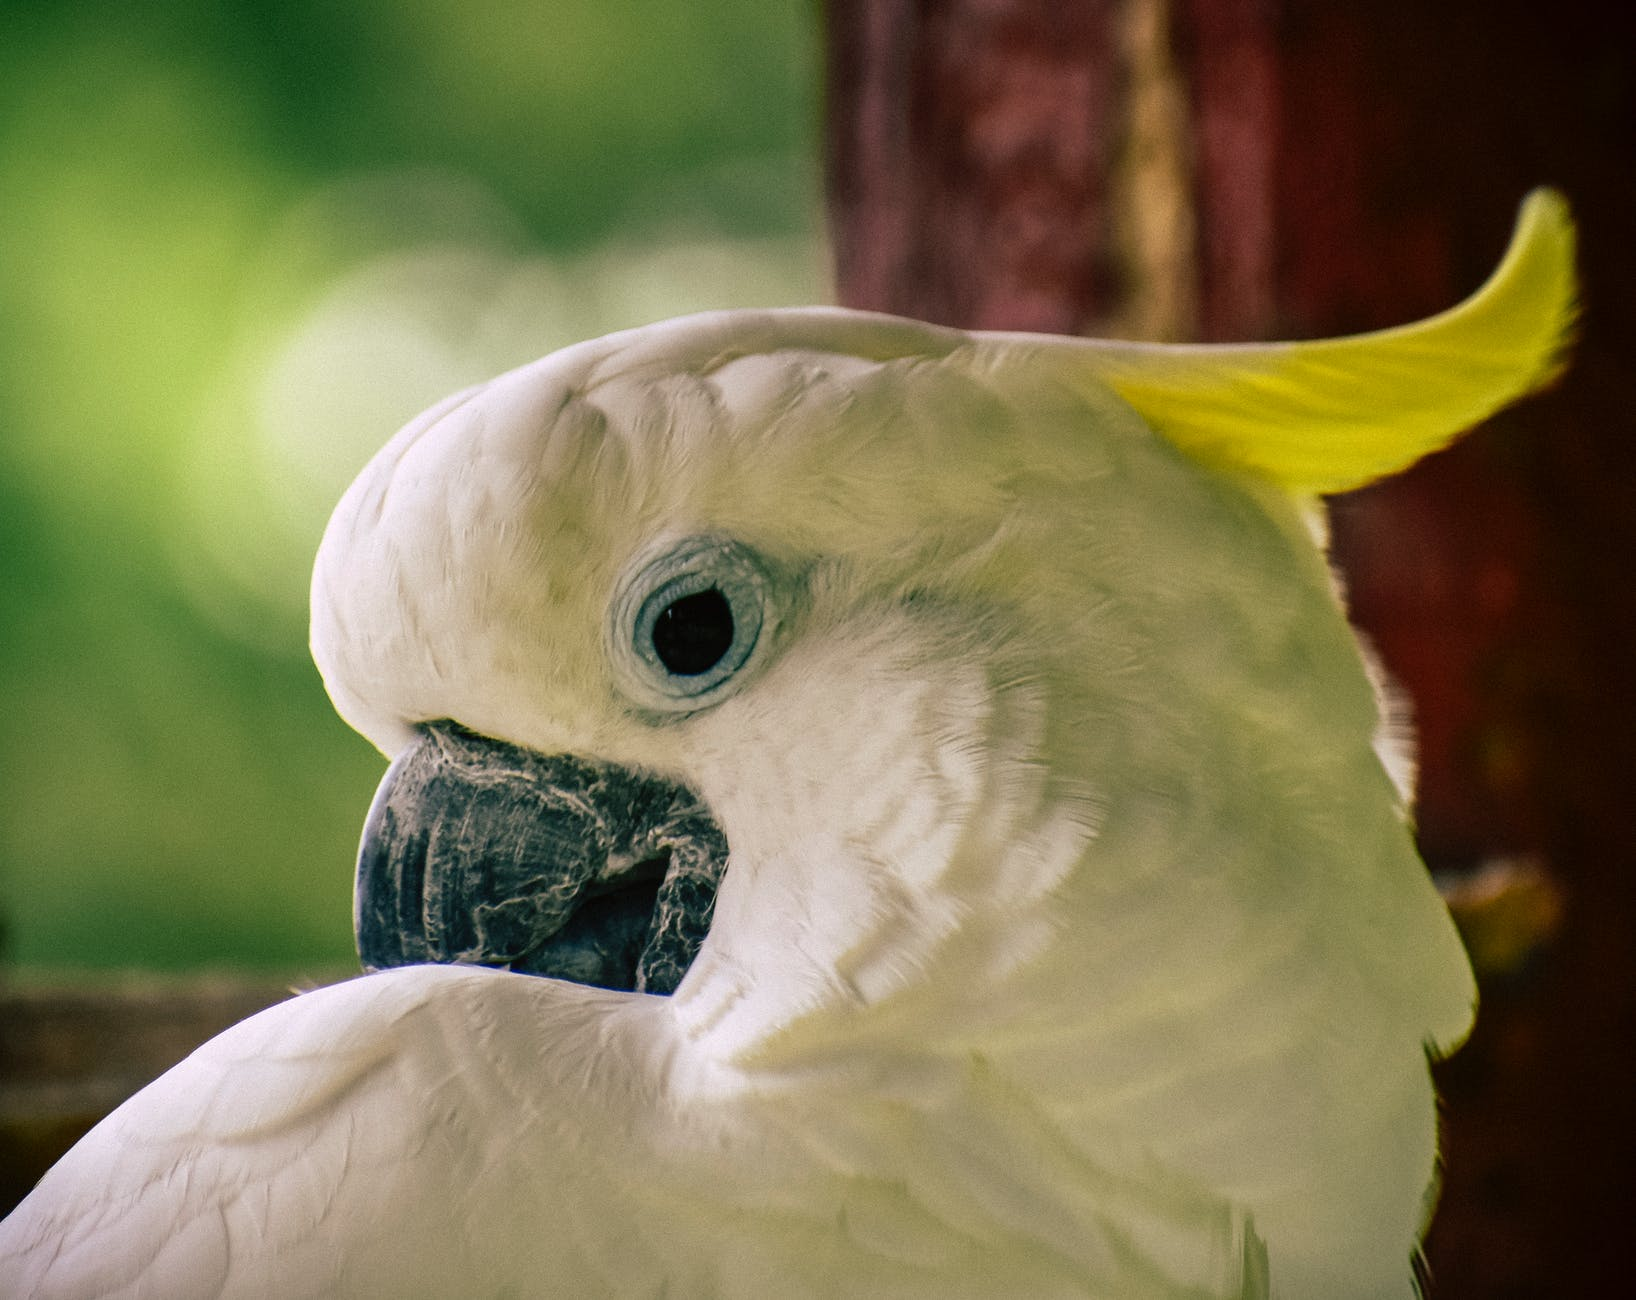 Imagine of a cockatoo which as white feathers along its body, a black beak, blue eyes and a yellow feather flicking out from its head.